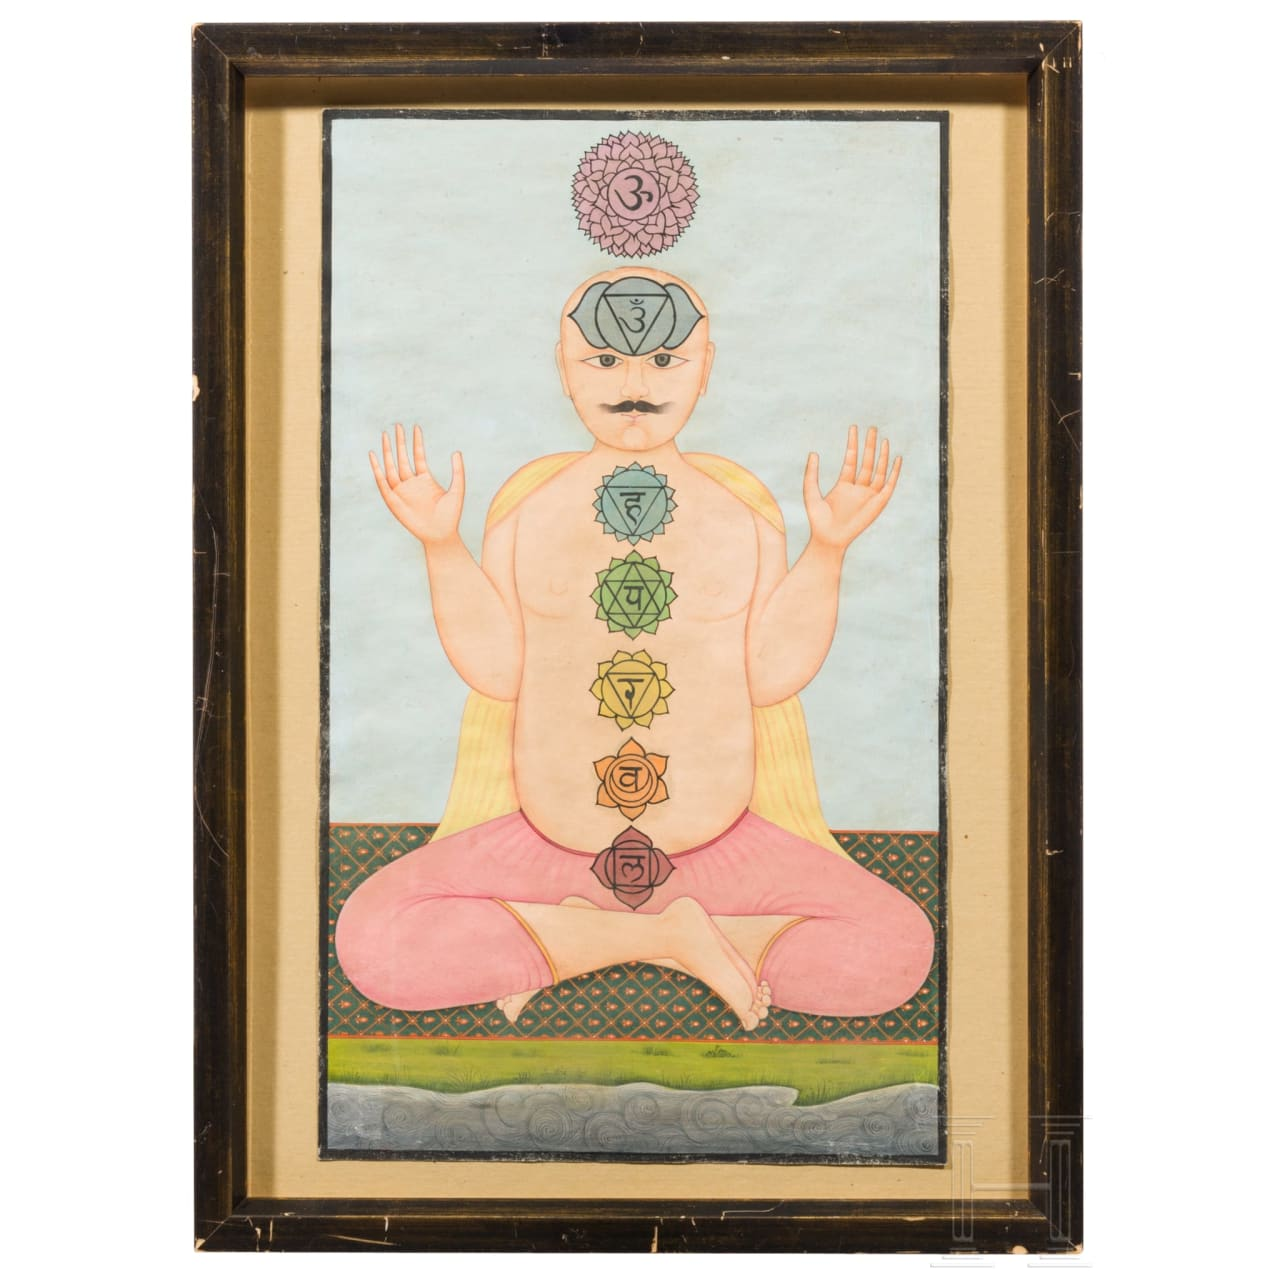 A miniature painting of a Yogi, Gouache on paper, India, 19th cent.